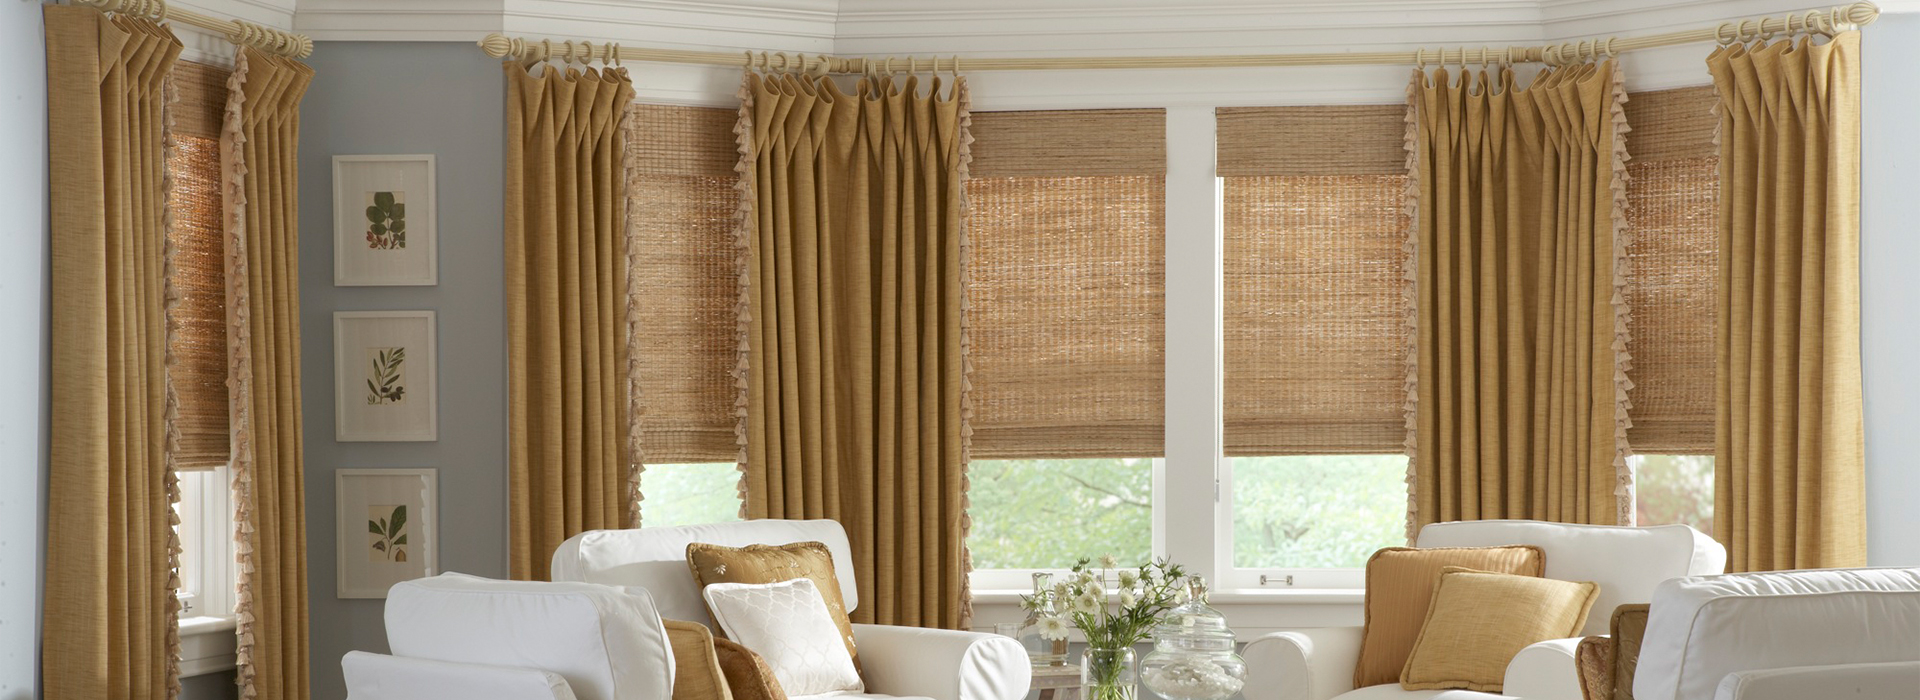 window treatments miami house weve got you covered ford window treatments miami